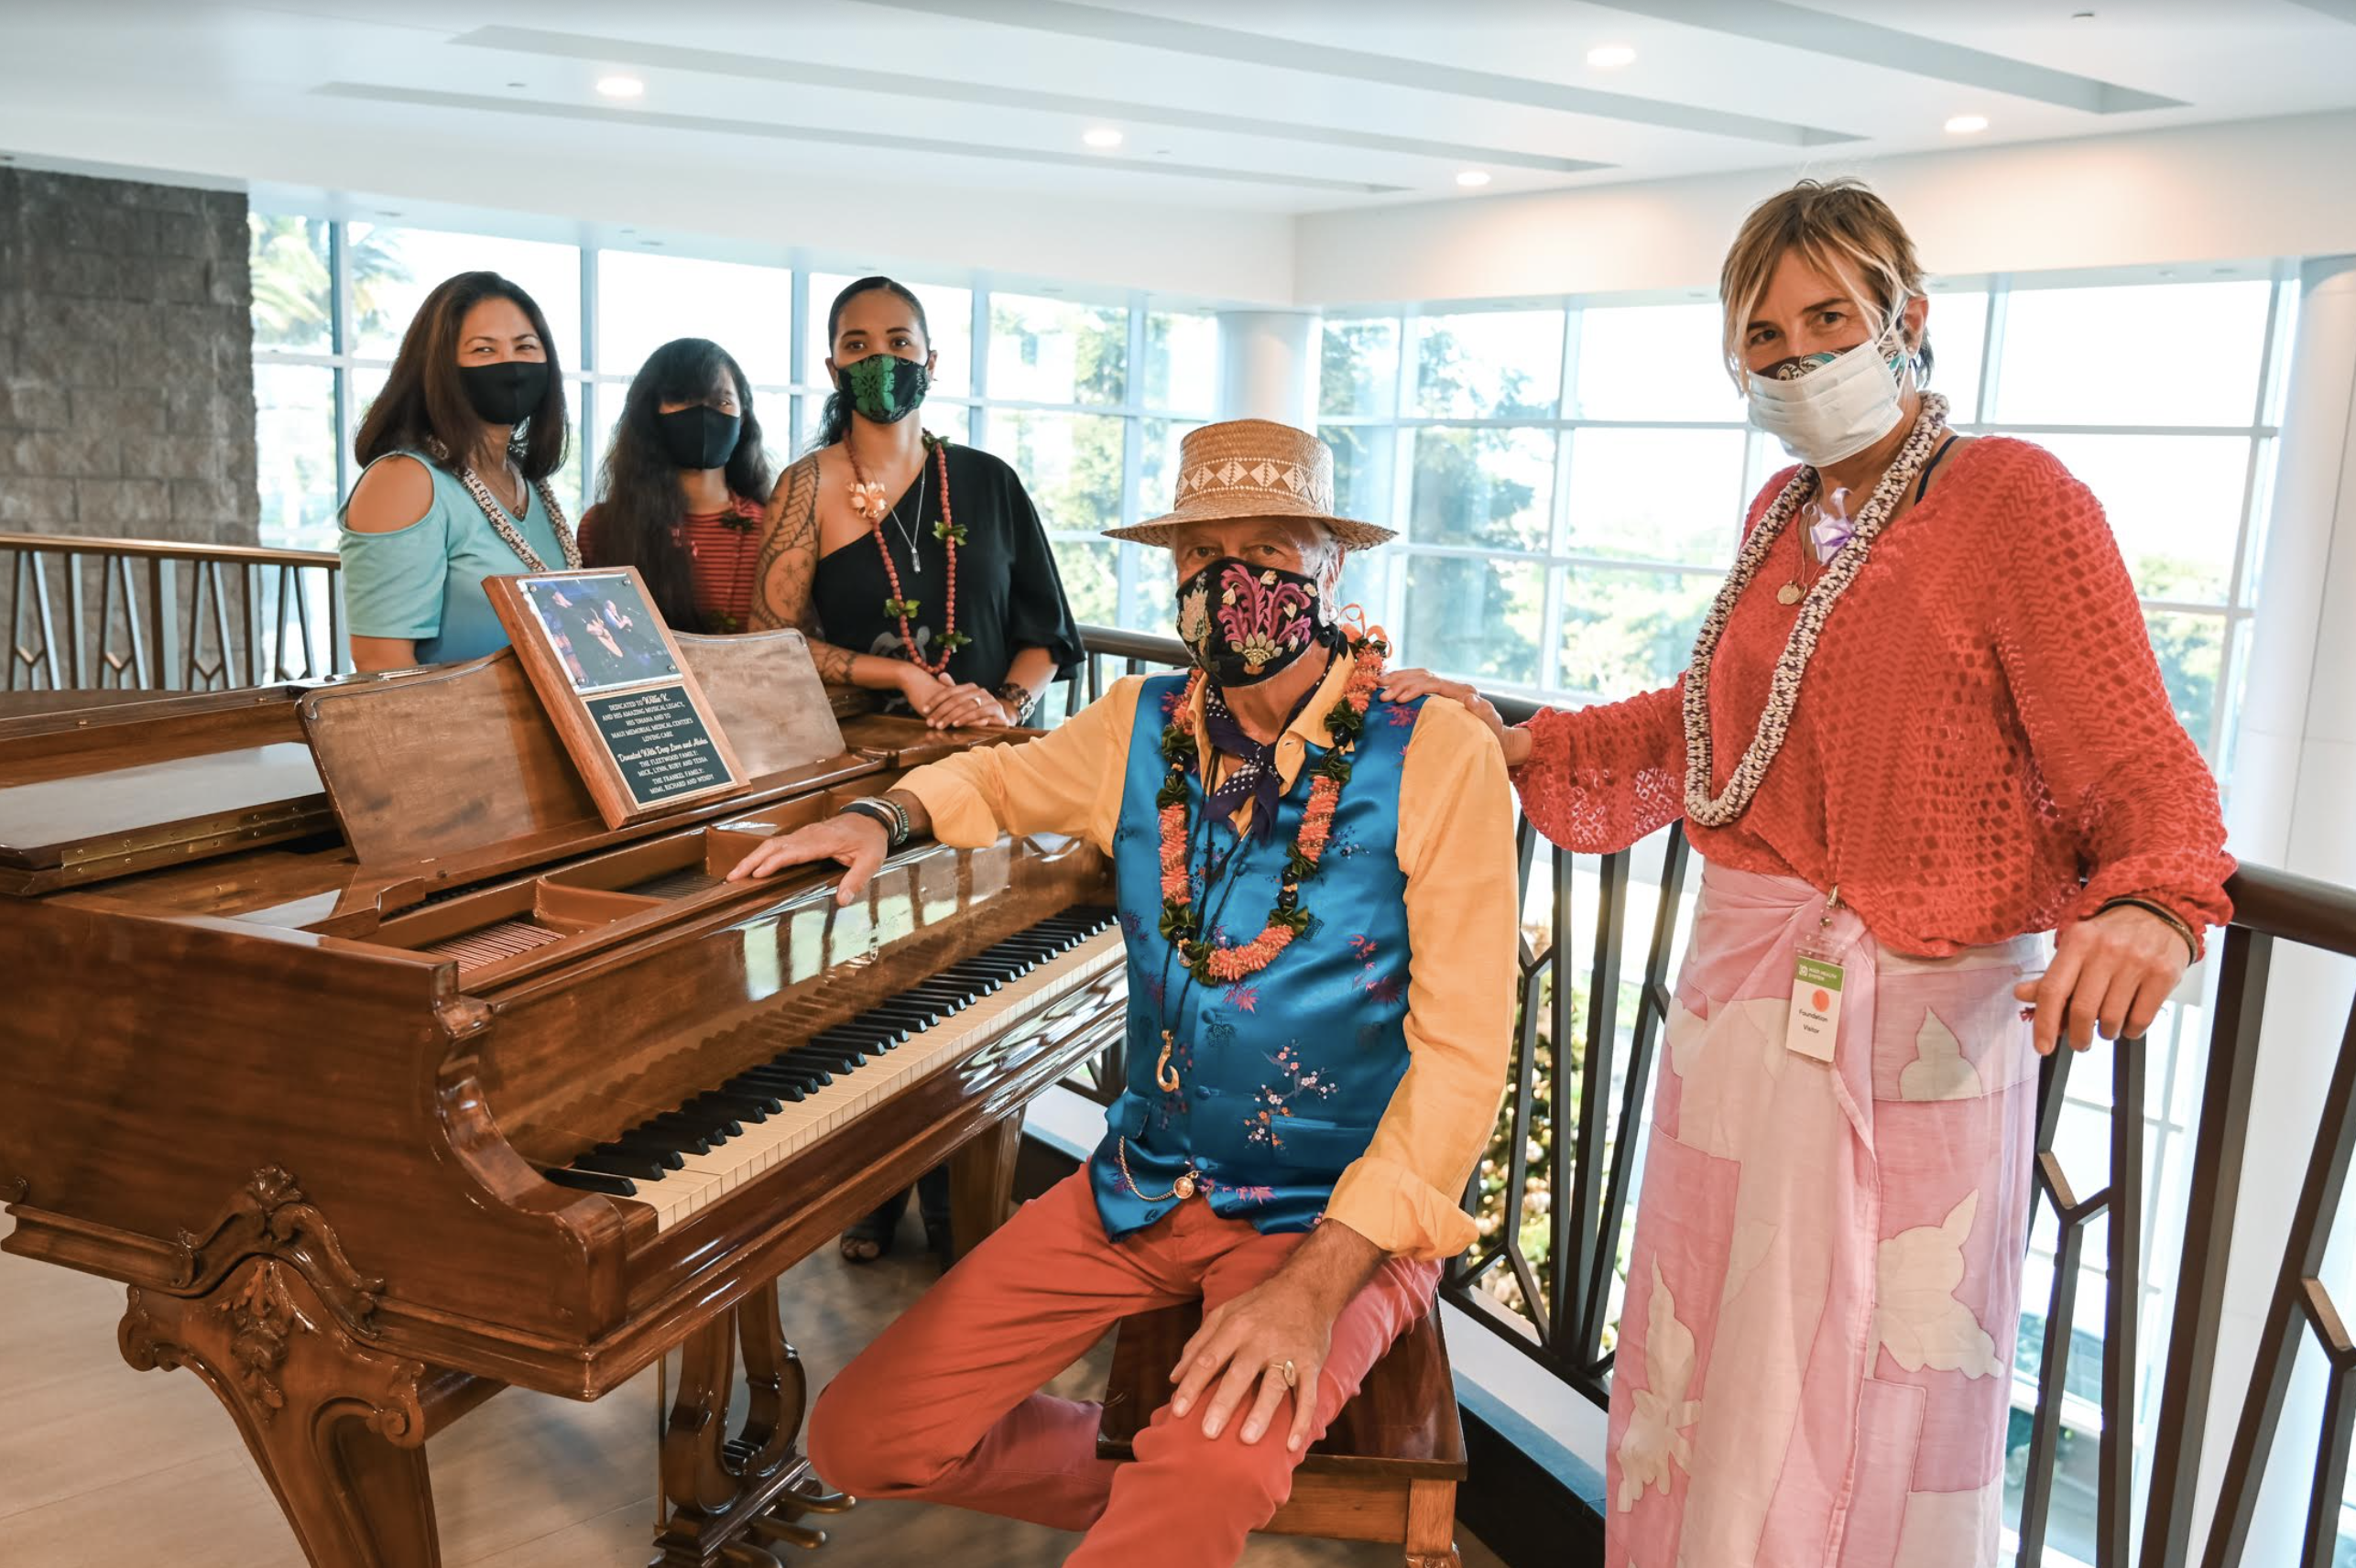 Mick Fleetwood Donates Piano to Maui Health in Honor of Late Musician Willie K.